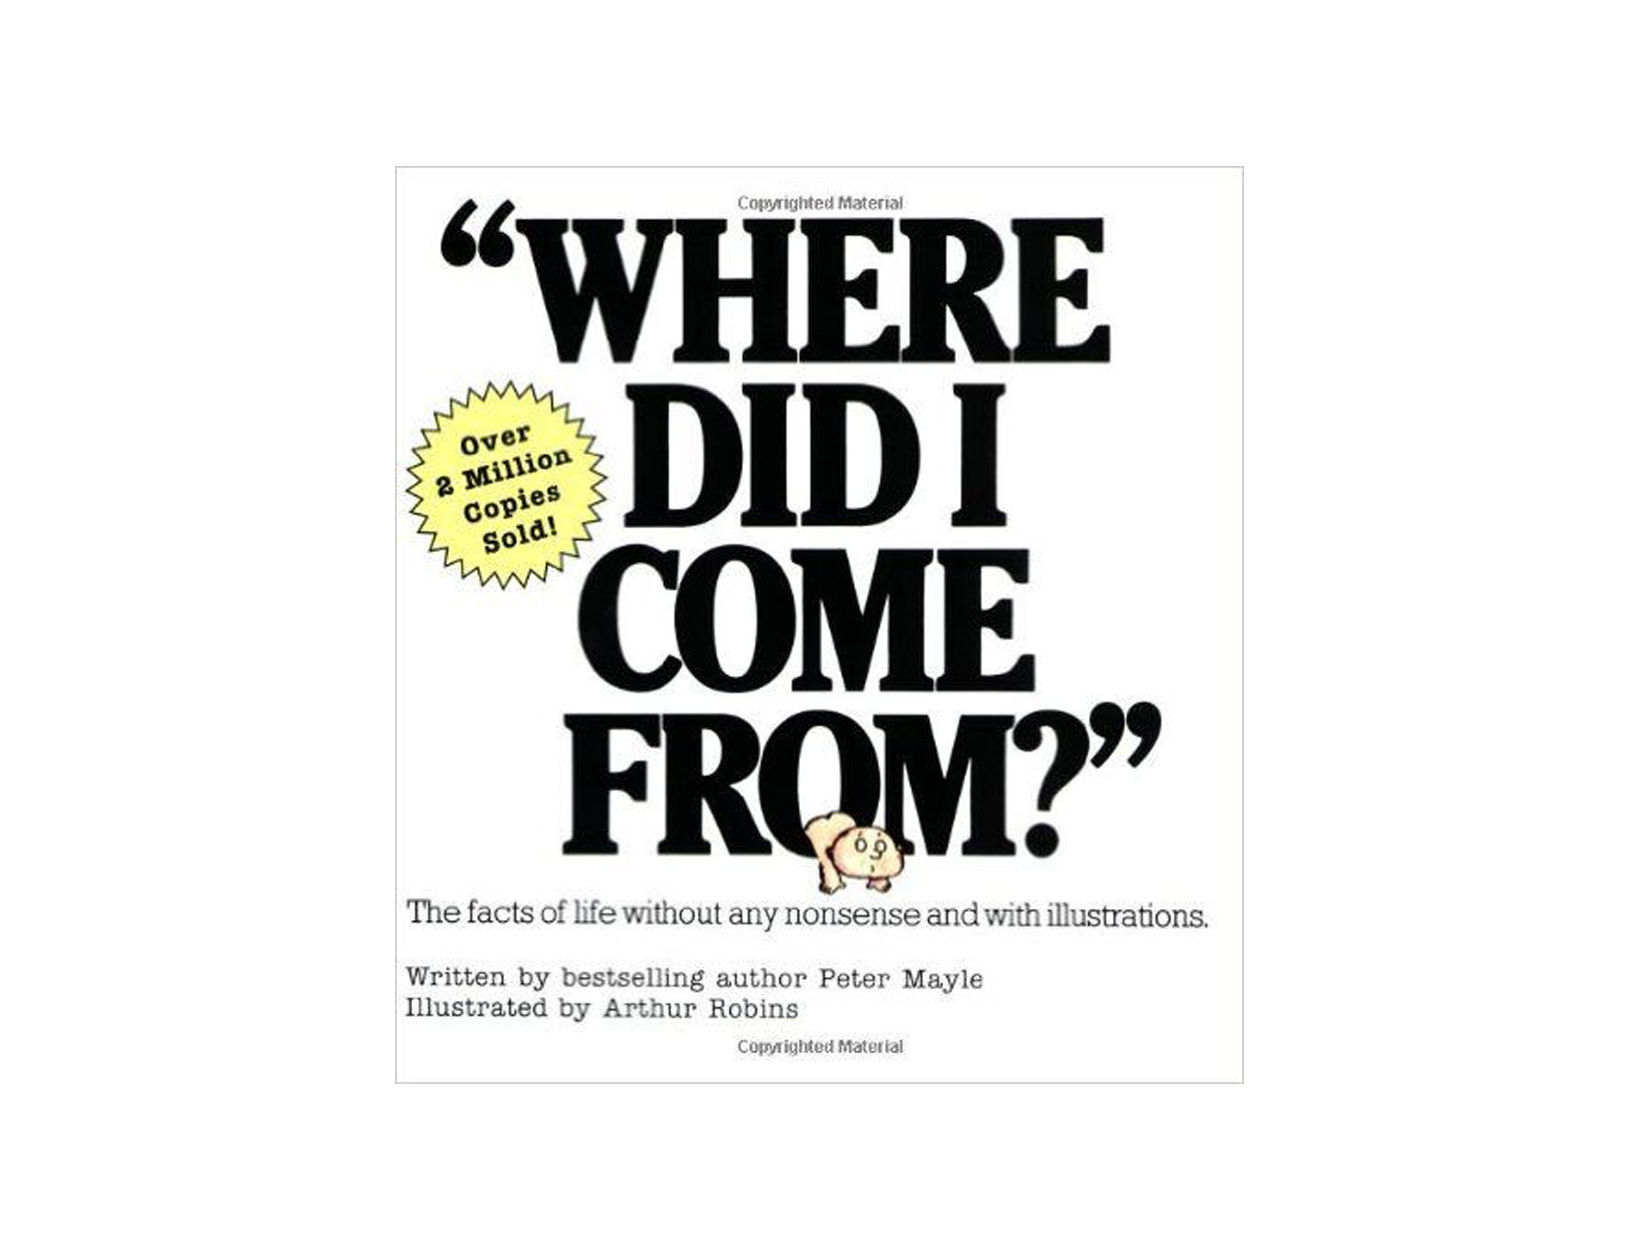 Where Did I Come From? by Peter Mayle